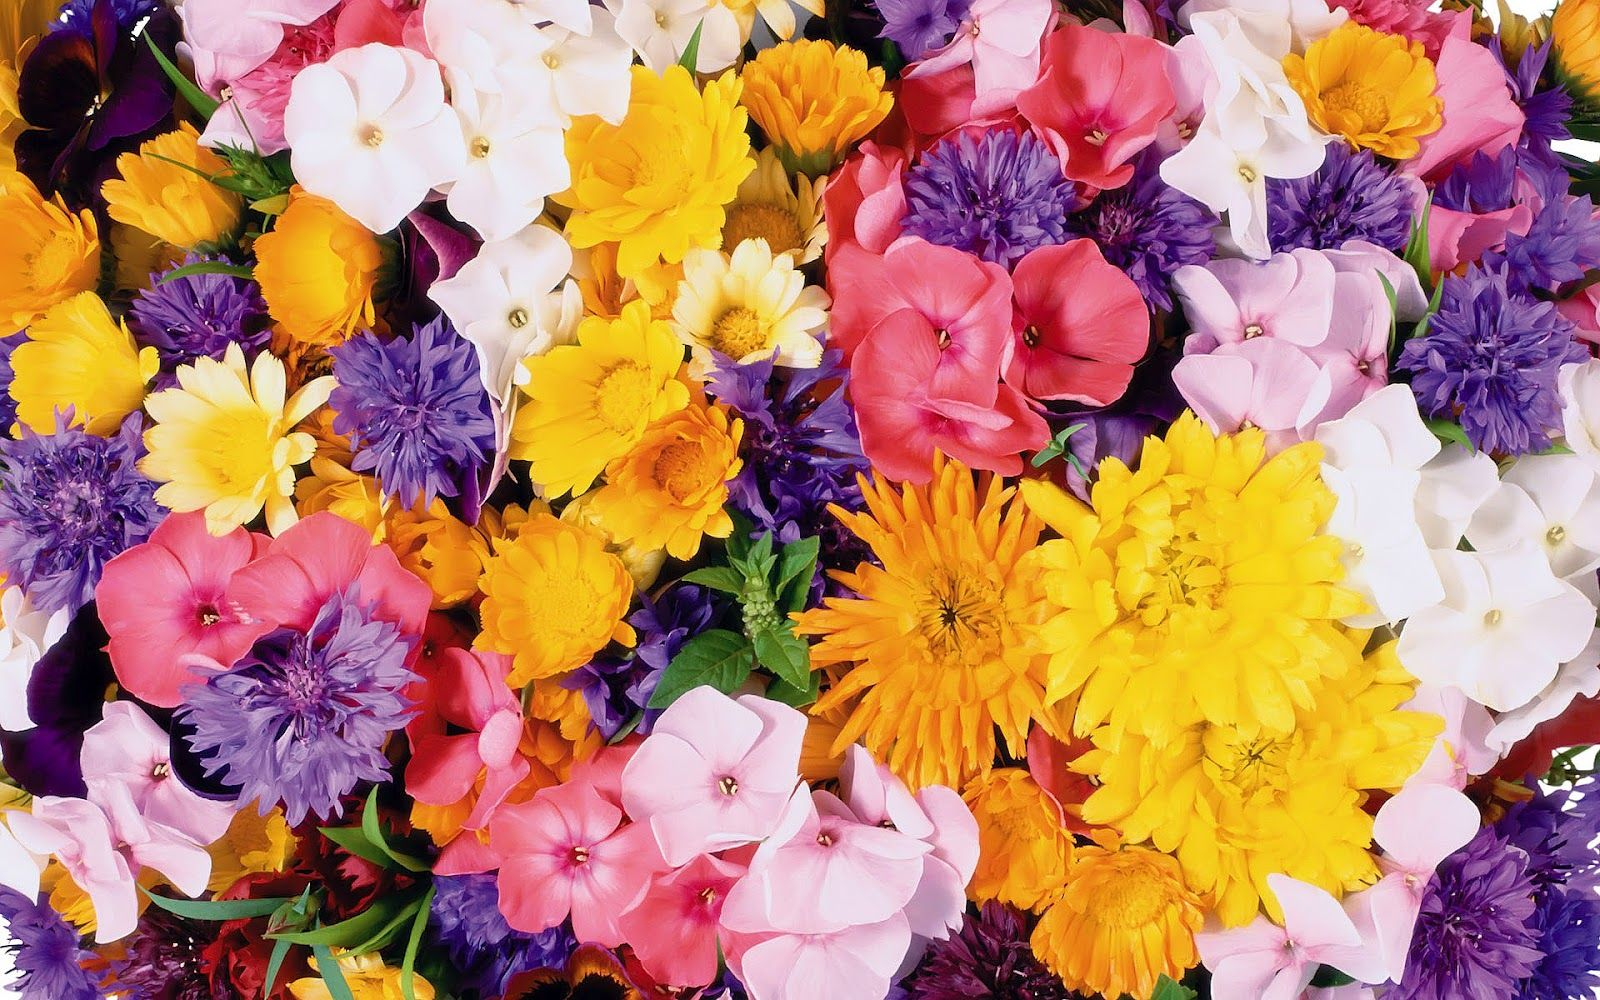 Beautiful flowers wallpapers hd wallpapers pinterest beautiful flowers wallpapers hd wallpapers pinterest beautiful flowers wallpapers and wallpaper dhlflorist Image collections